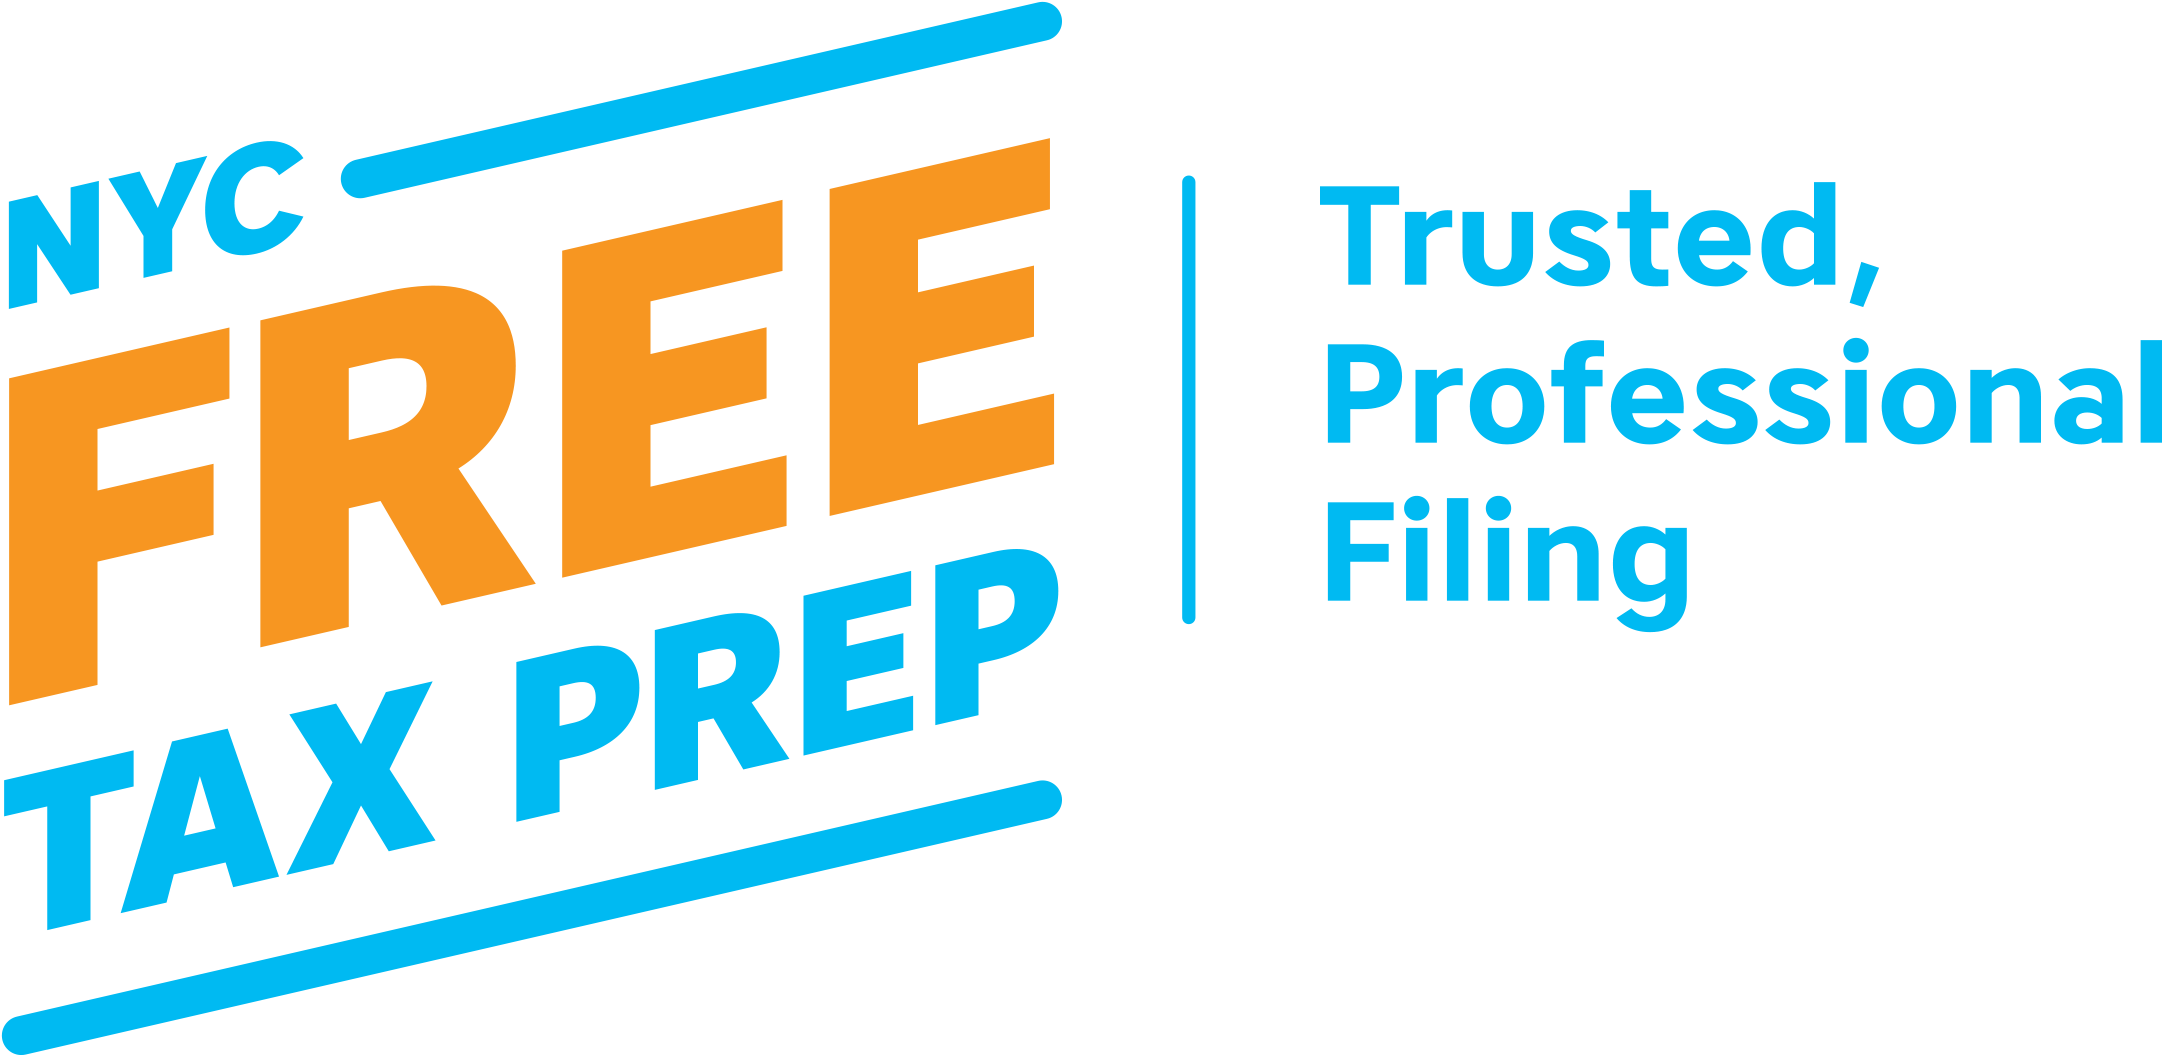 NYC Free Tax Prep | Trusted, professional filing